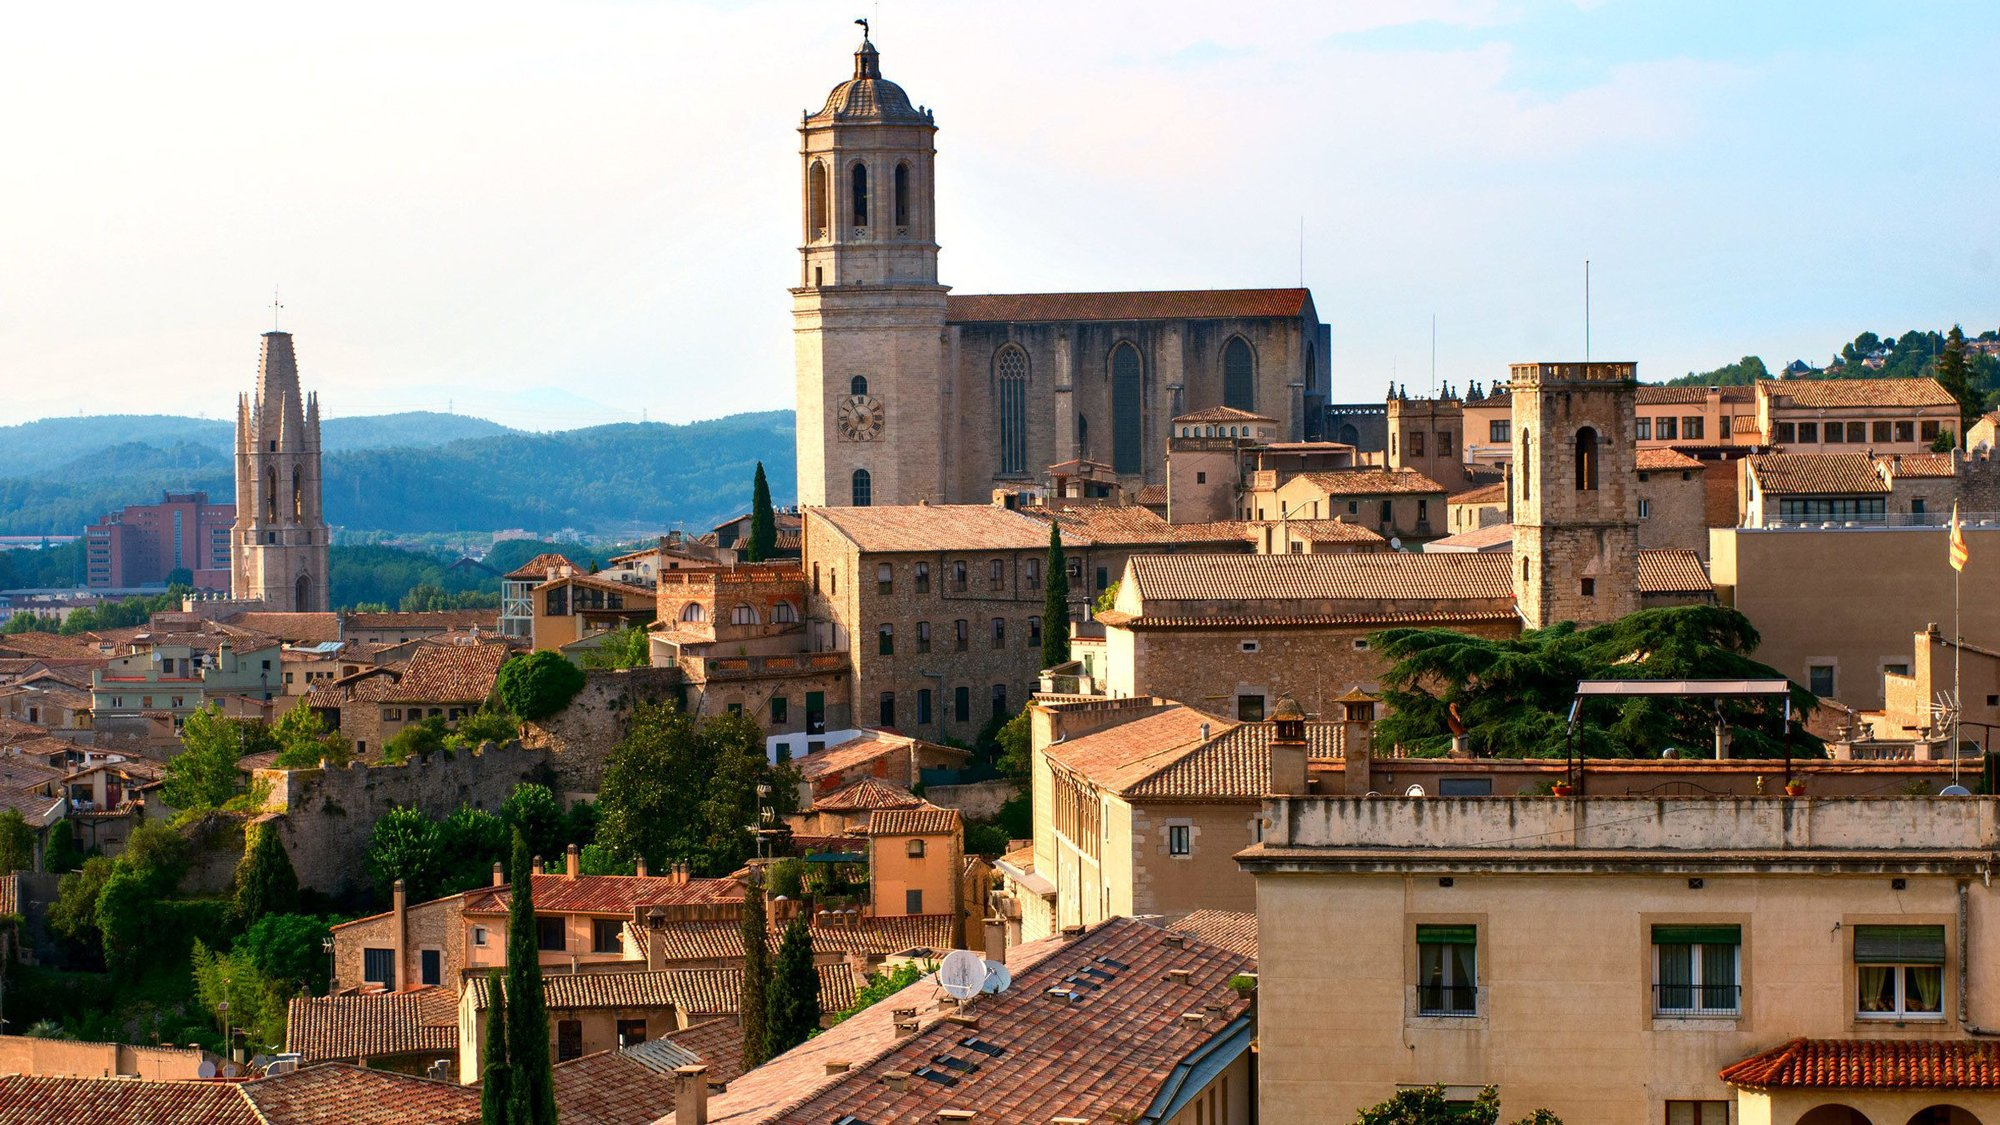 Red tile roofs of the town of Girona in Spain